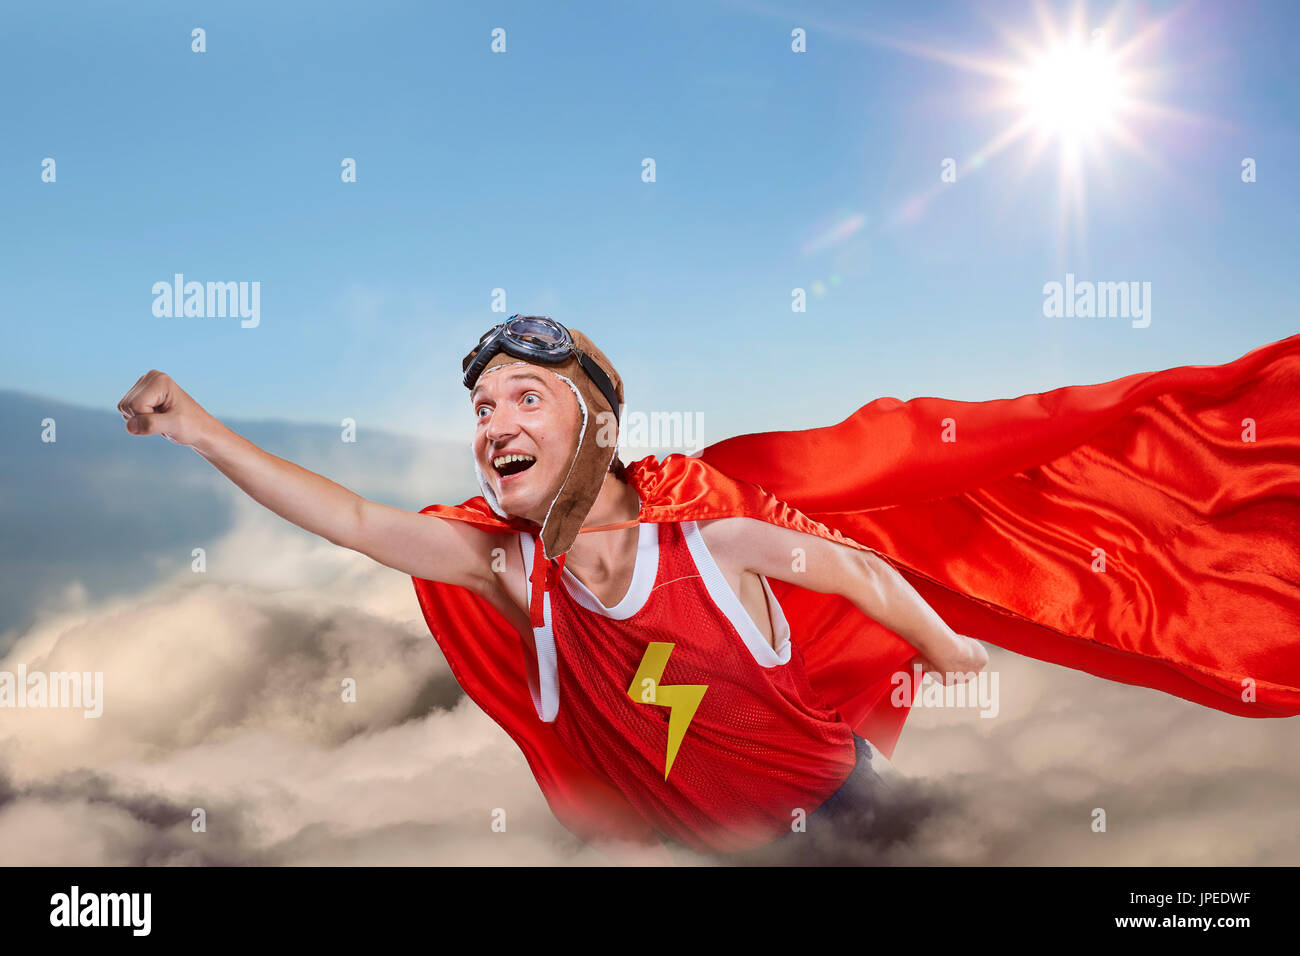 A funny super hero fly above the clouds in the sky - Stock Image